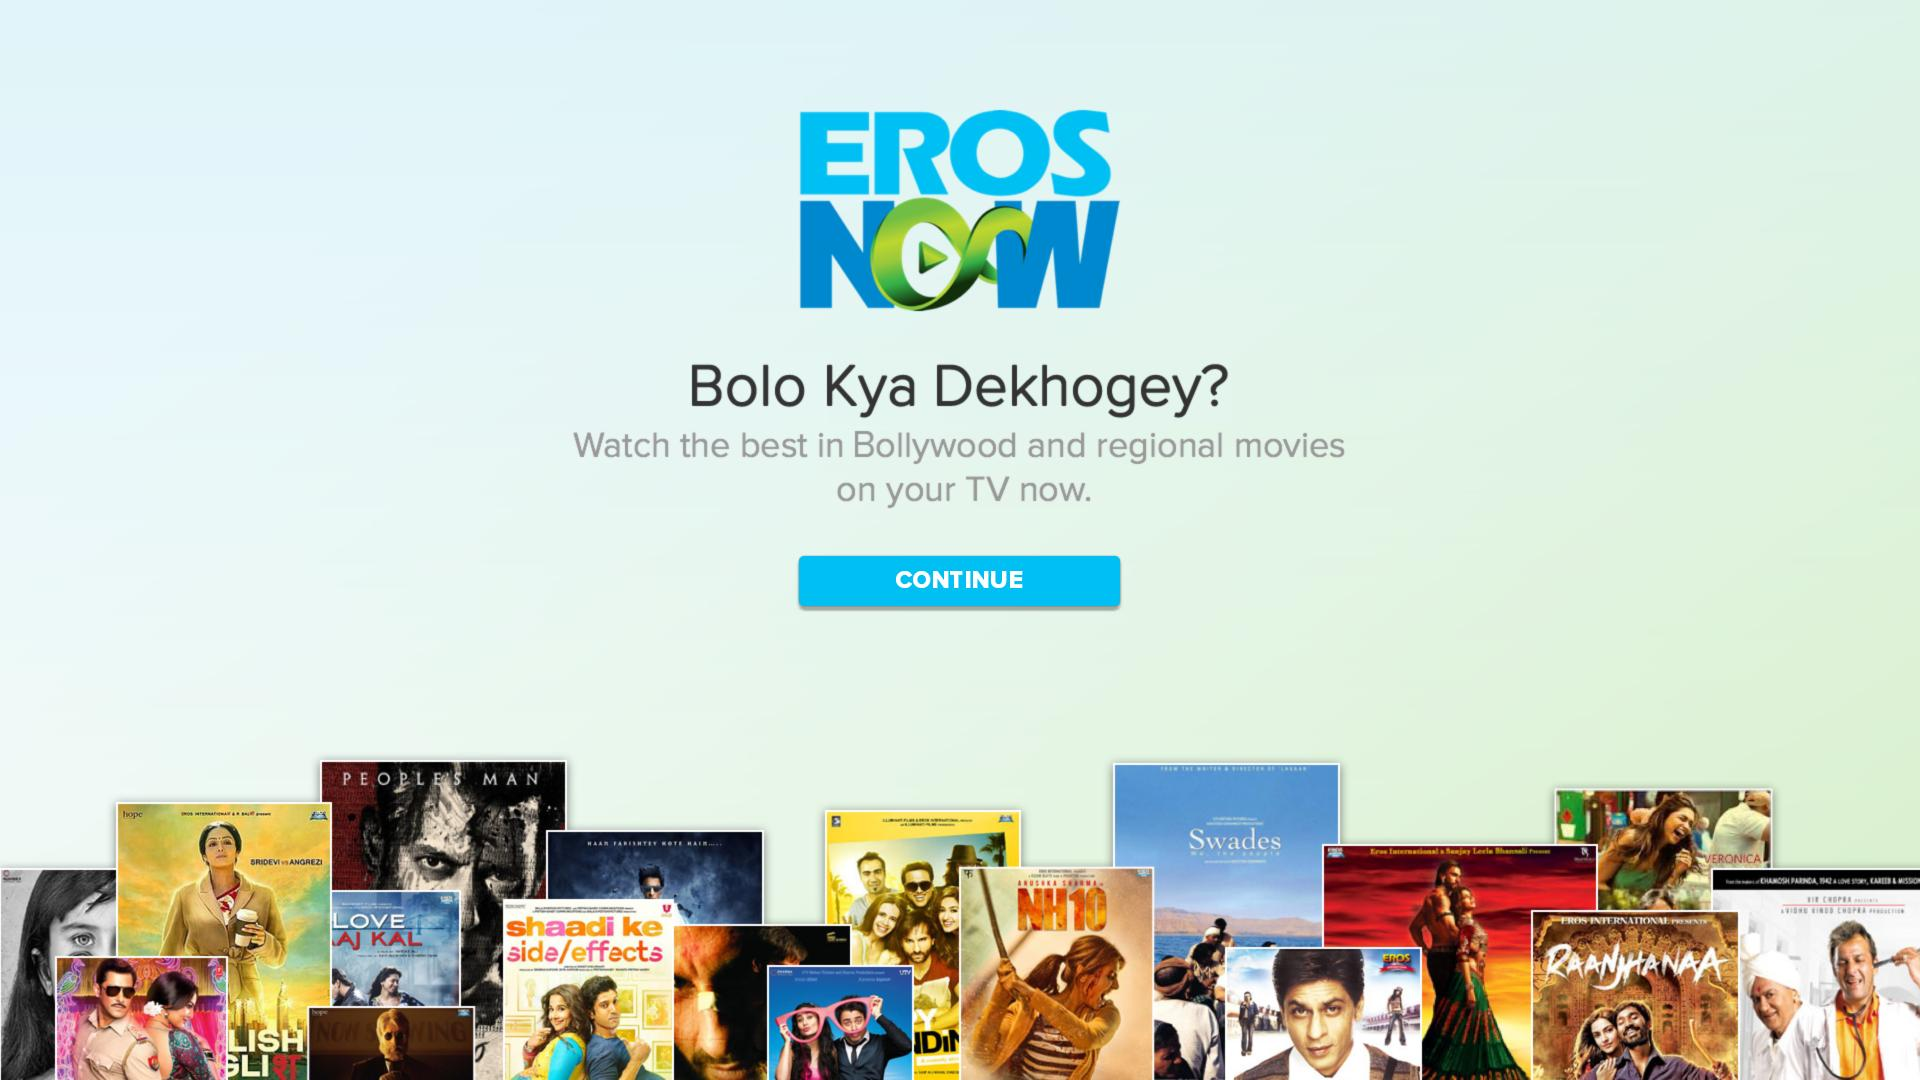 eros now full movies download